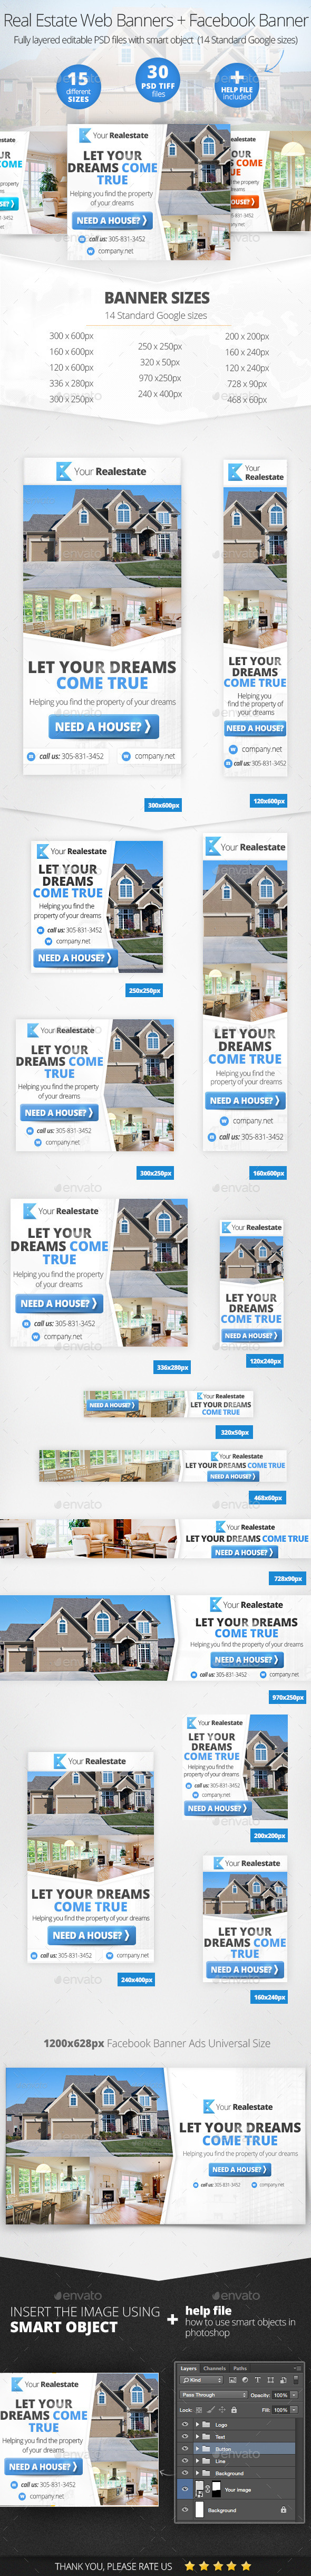 GraphicRiver Real Estate Web & Facebook Banners 11947166